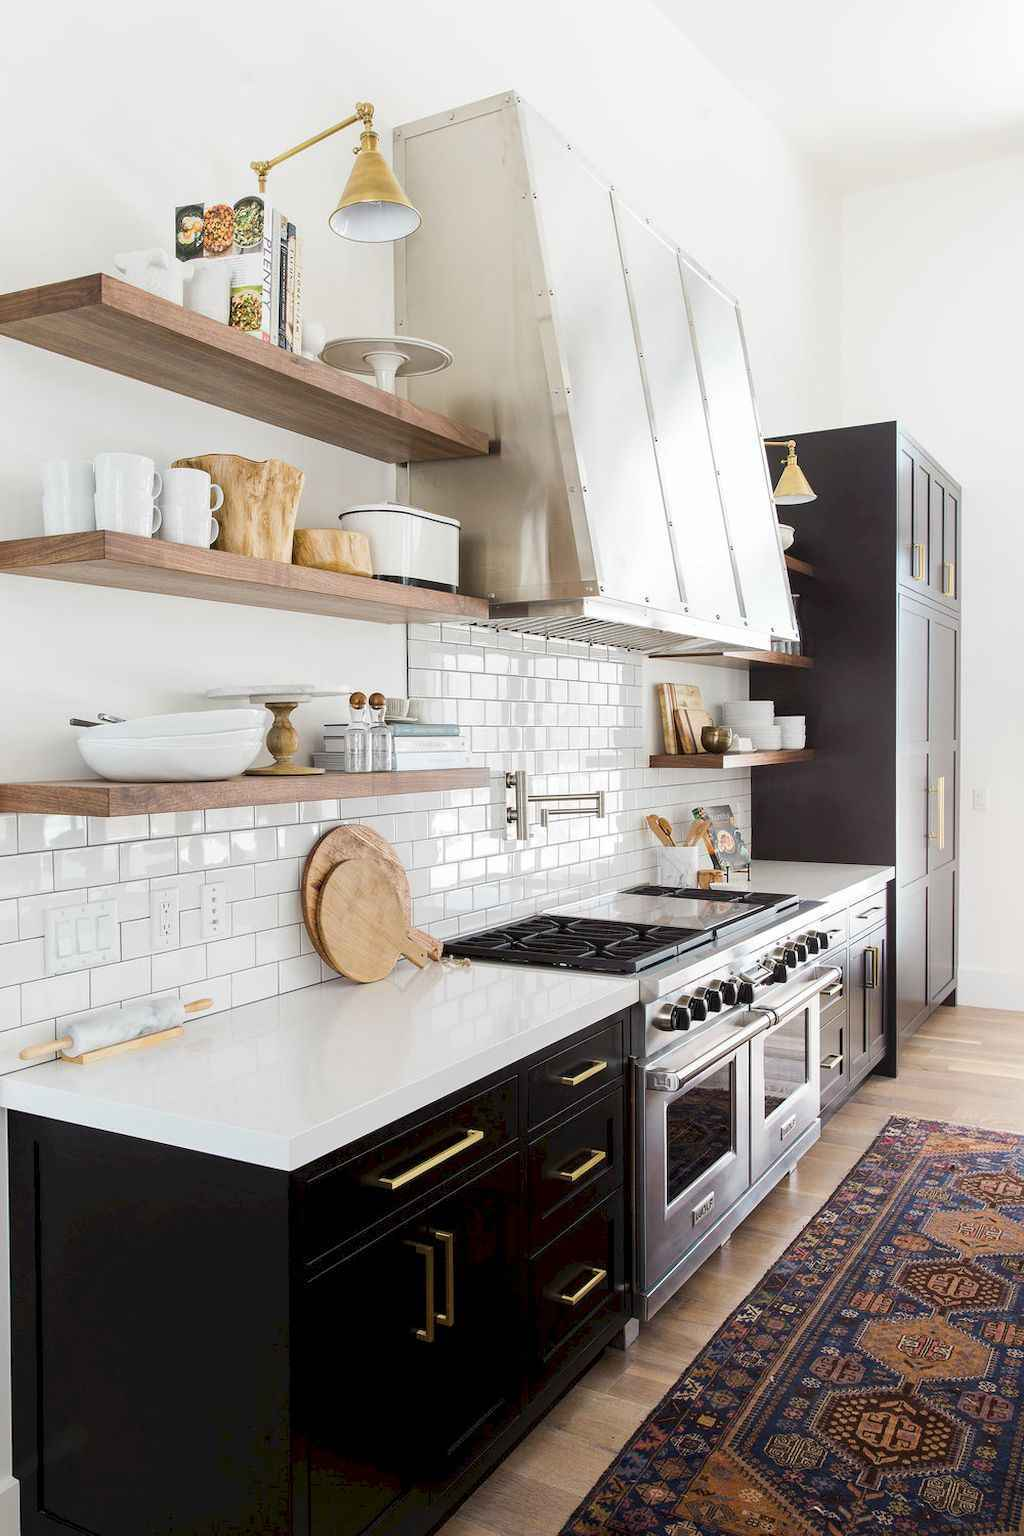 90 Rustic Kitchen Cabinets Farmhouse Style Ideas (52)